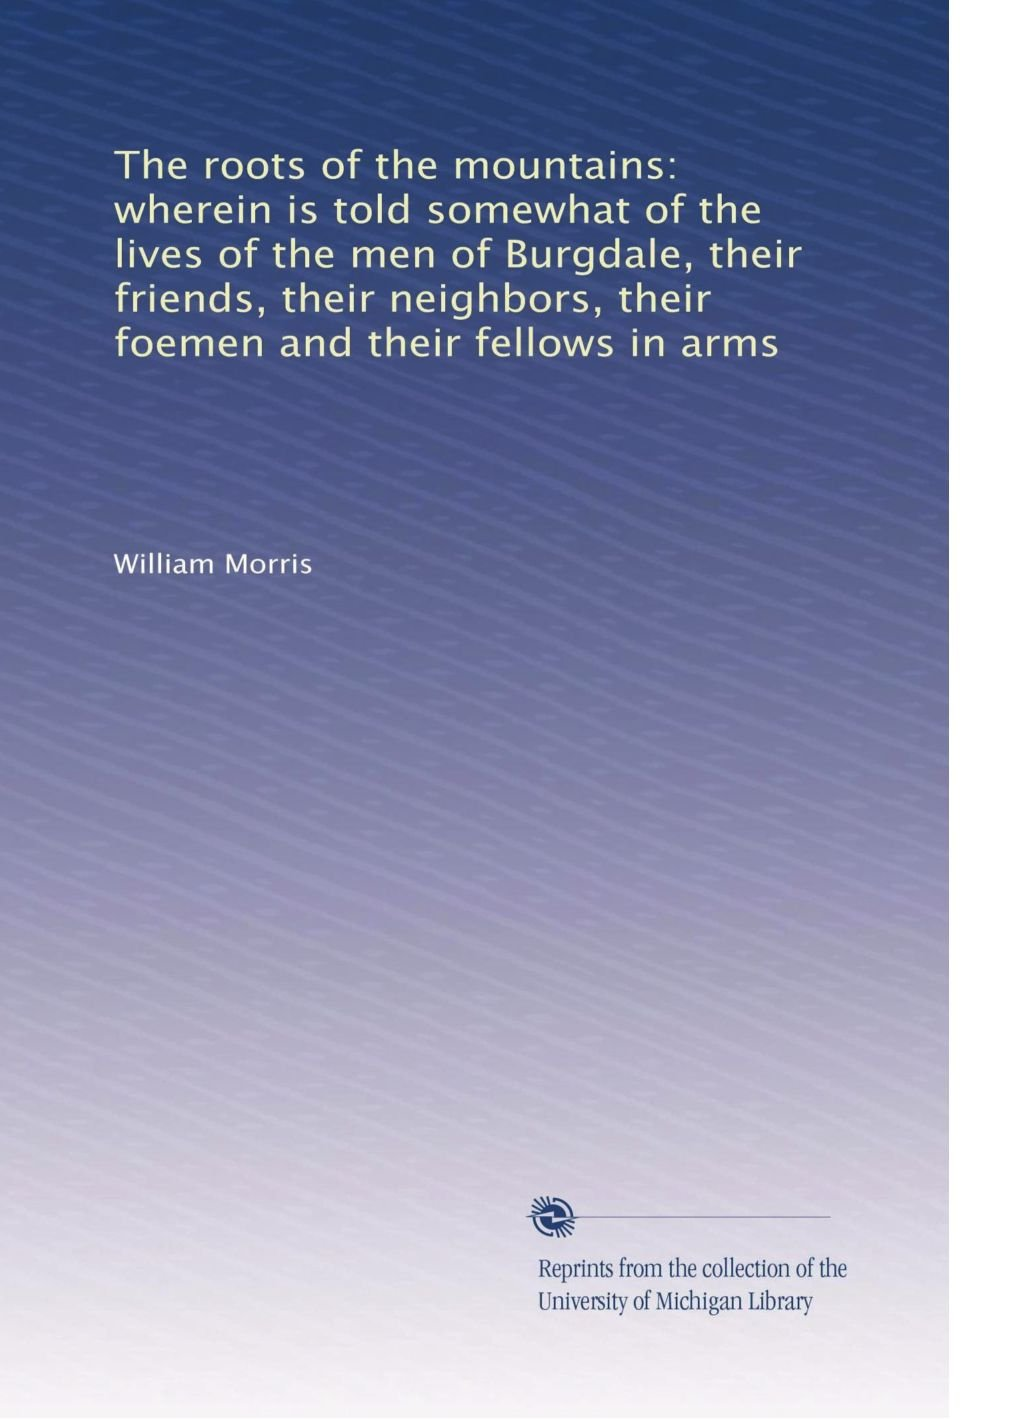 Download The roots of the mountains: wherein is told somewhat of the lives of the men of Burgdale, their friends, their neighbors, their foemen and their fellows in arms ebook